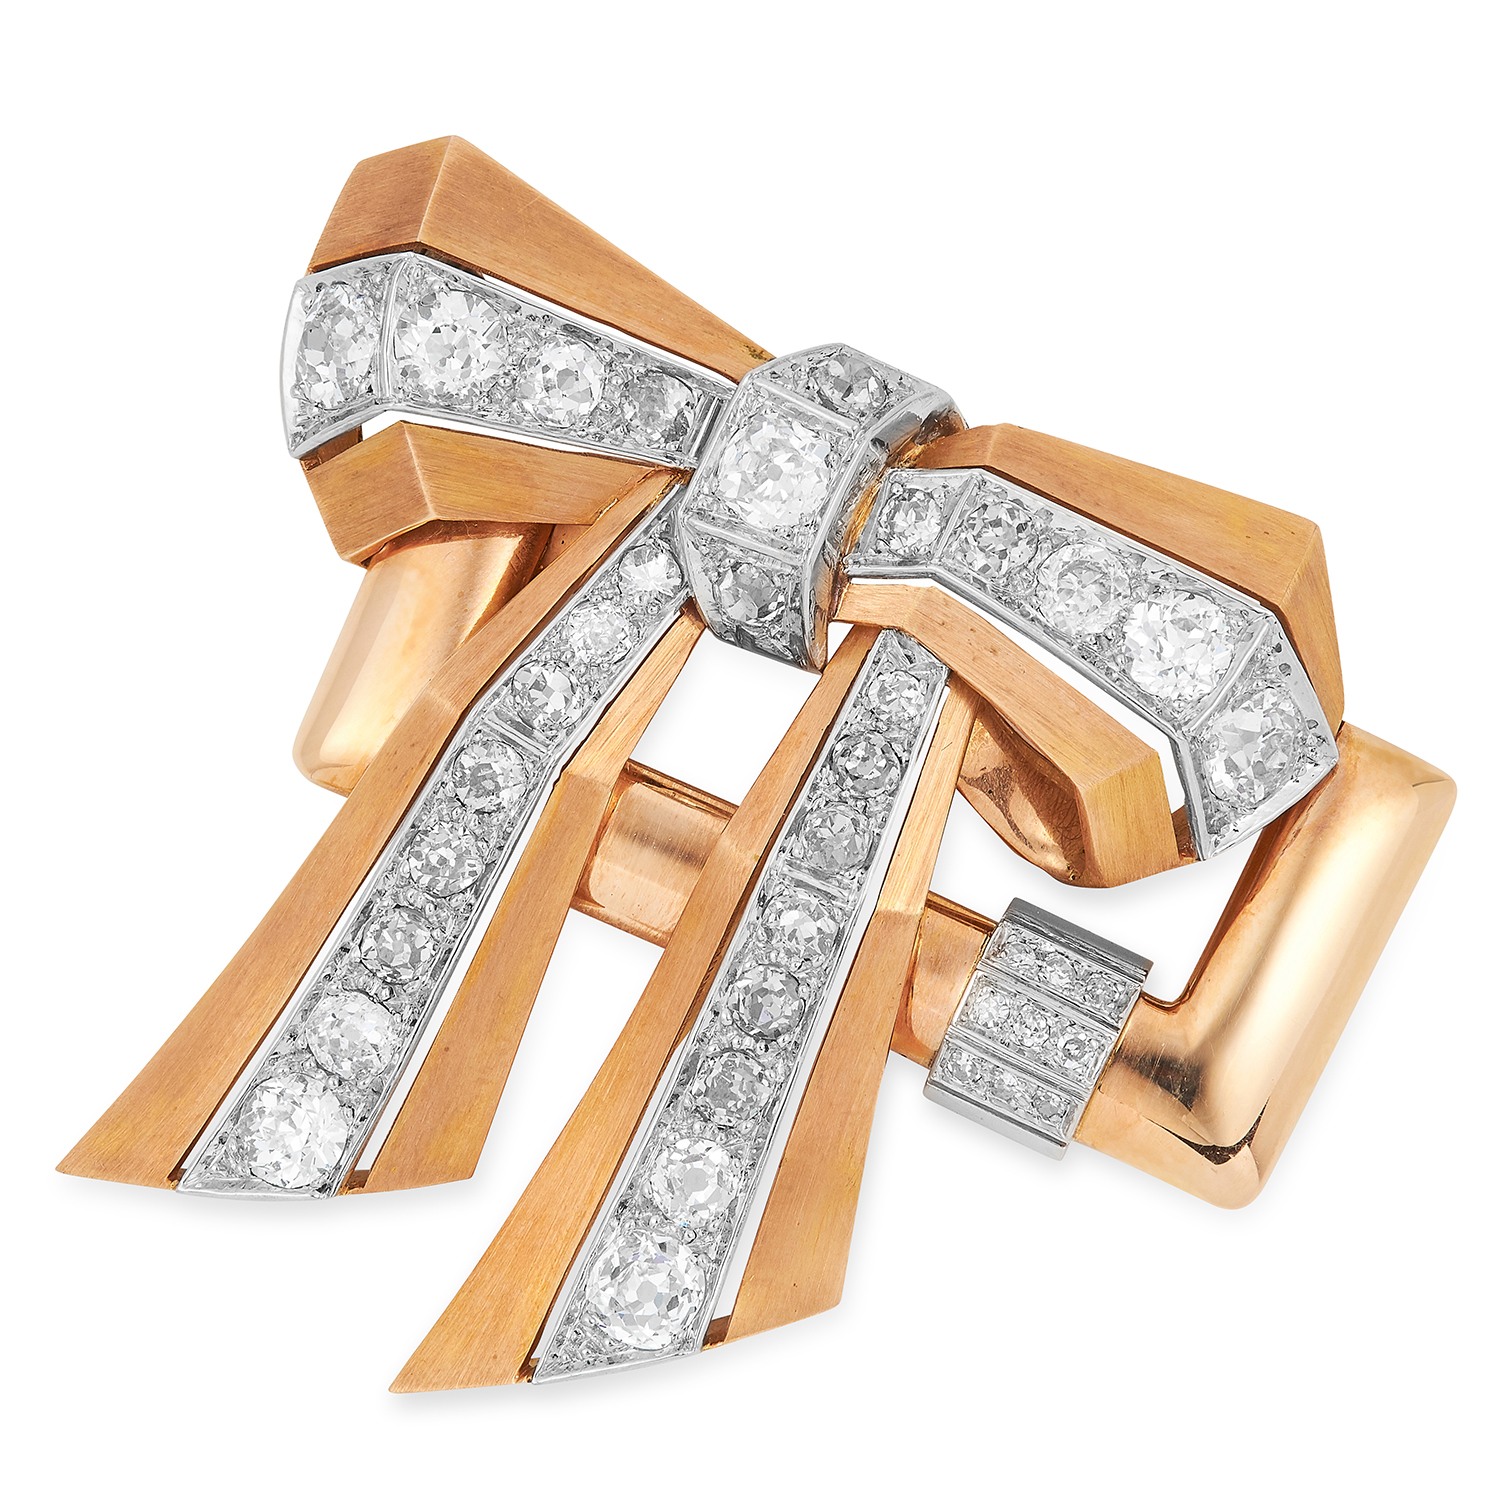 A RETRO DIAMOND BOW BROOCH 1940s designed as a geometric ribbon and bow set with old cut diamonds